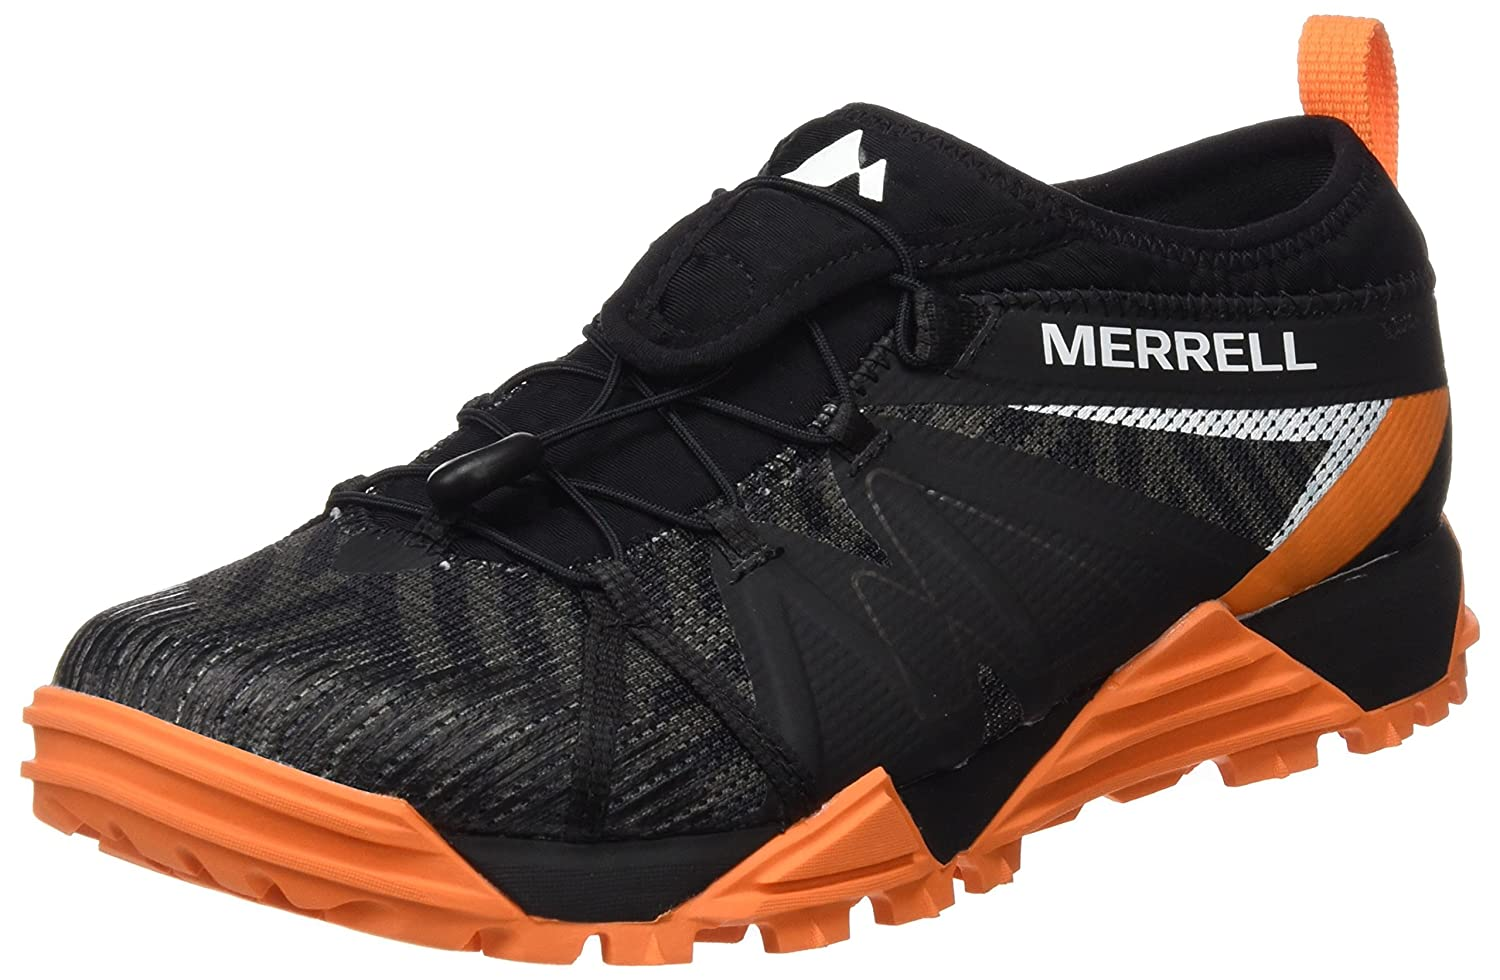 orange (Mudder orange) Merrell Men's Avalaunch Tough Mudder Trail Running shoes